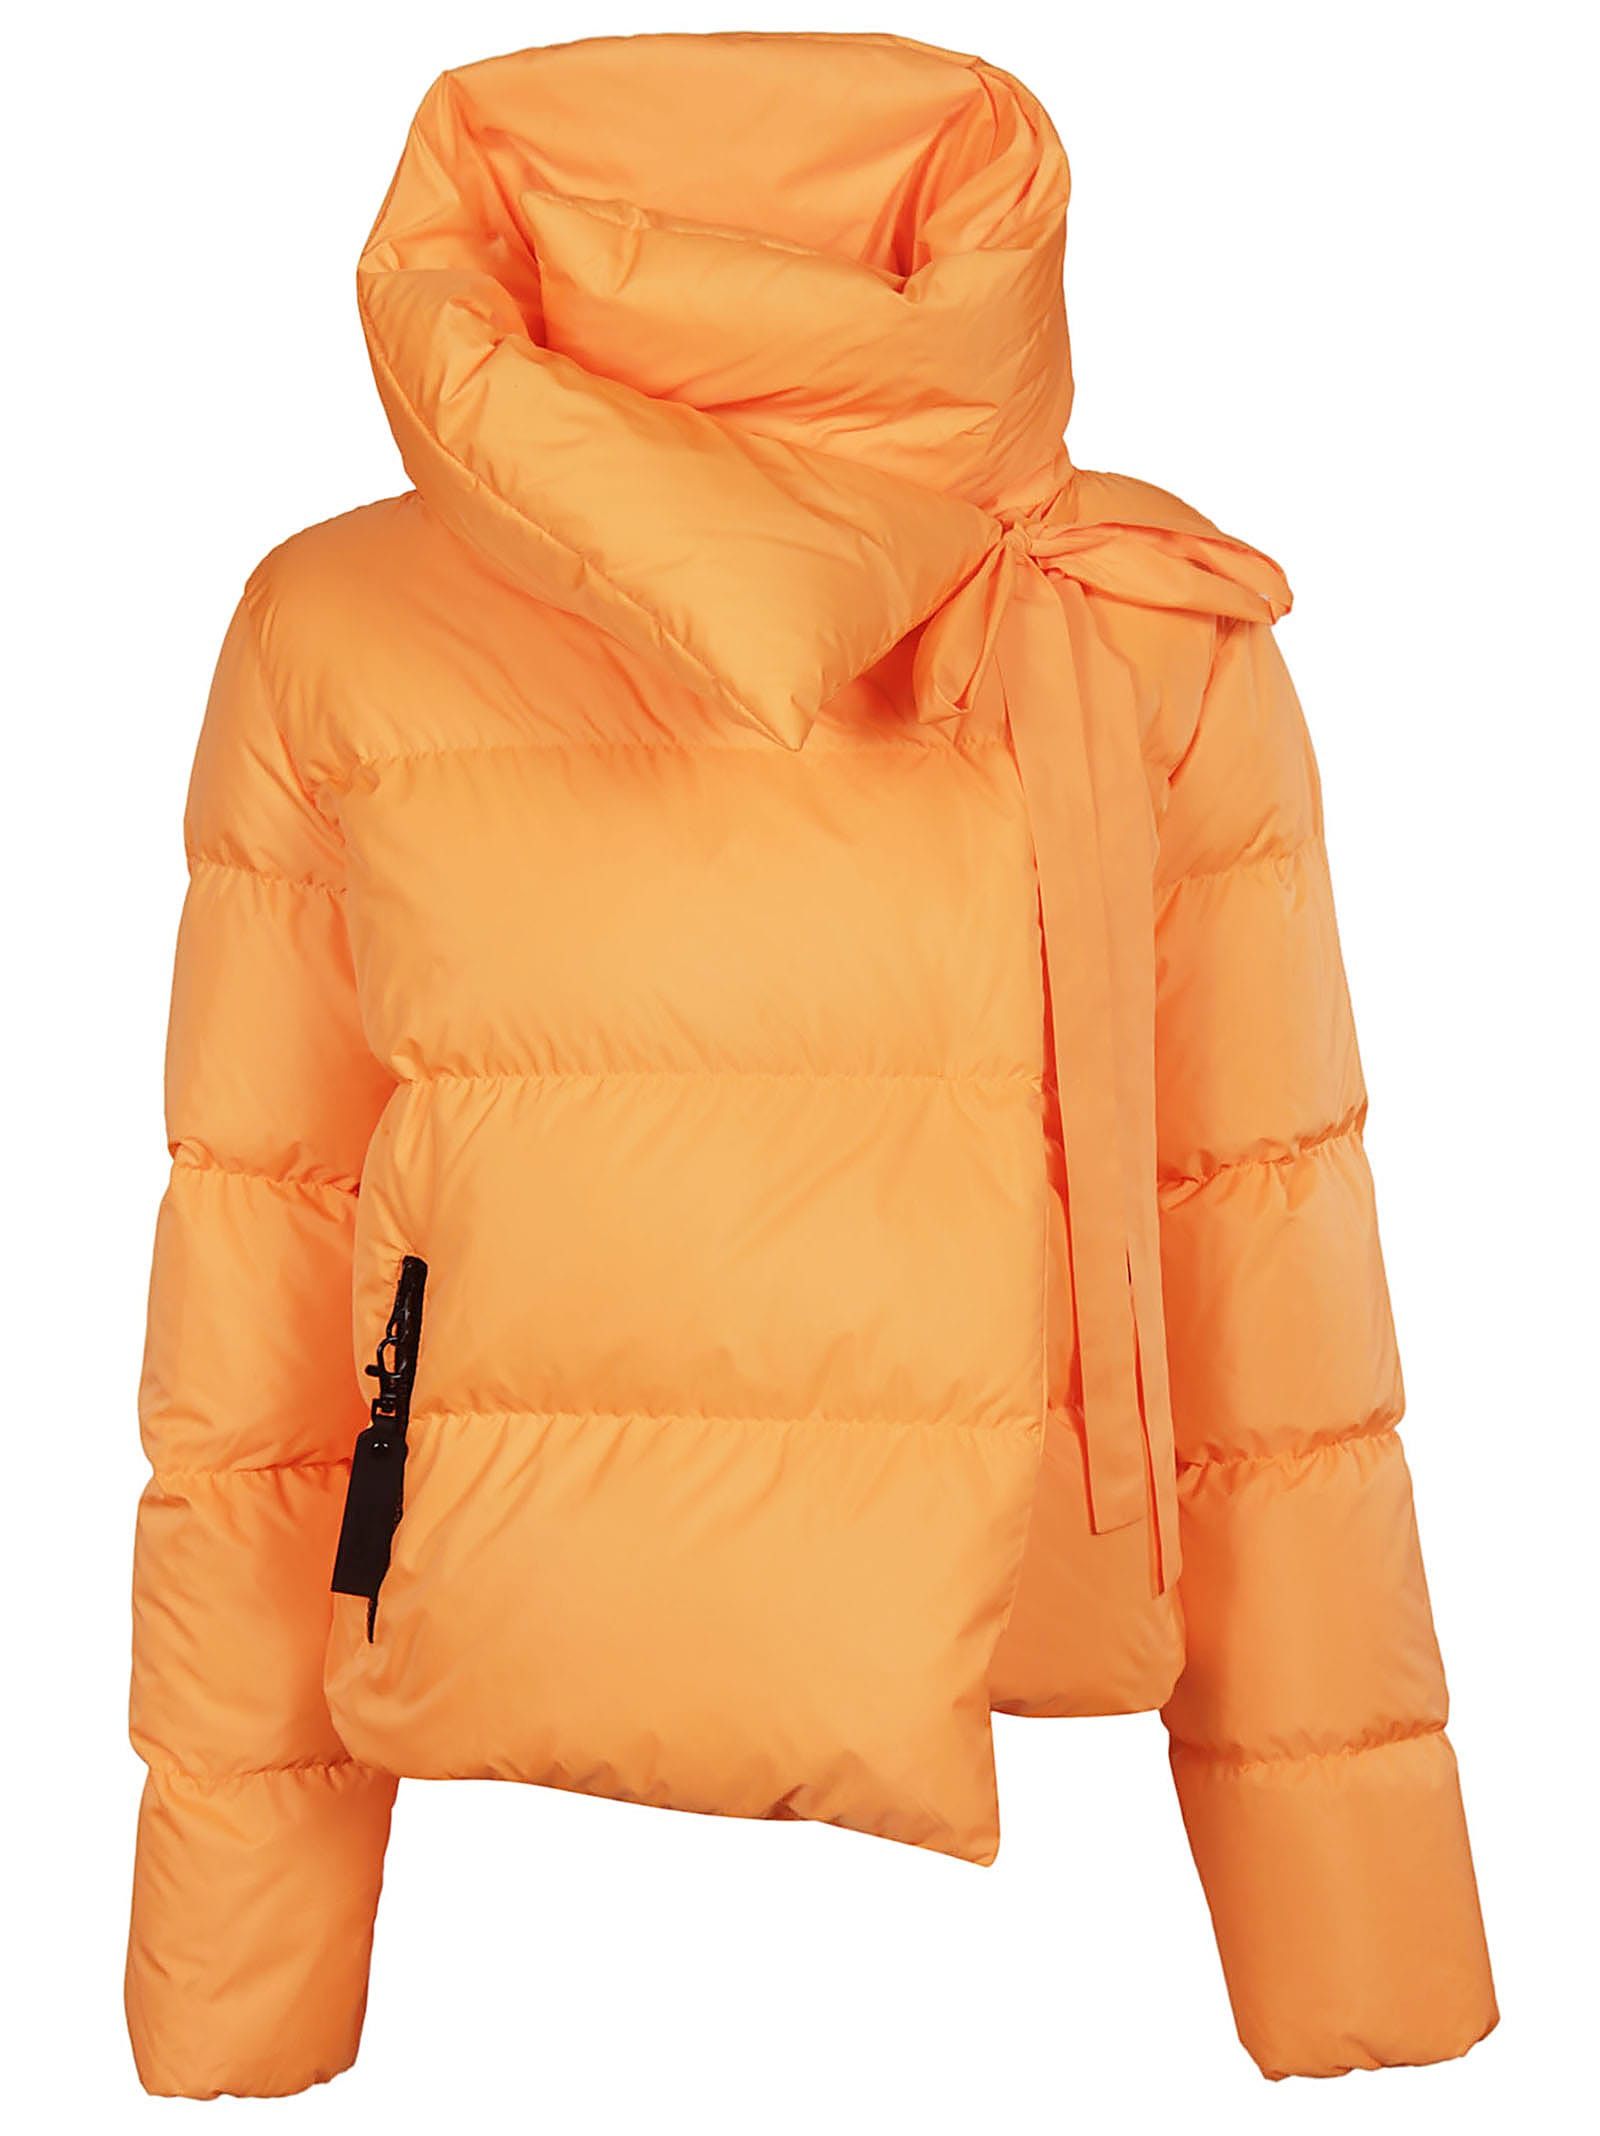 Bacon Puffa Padded Jacket